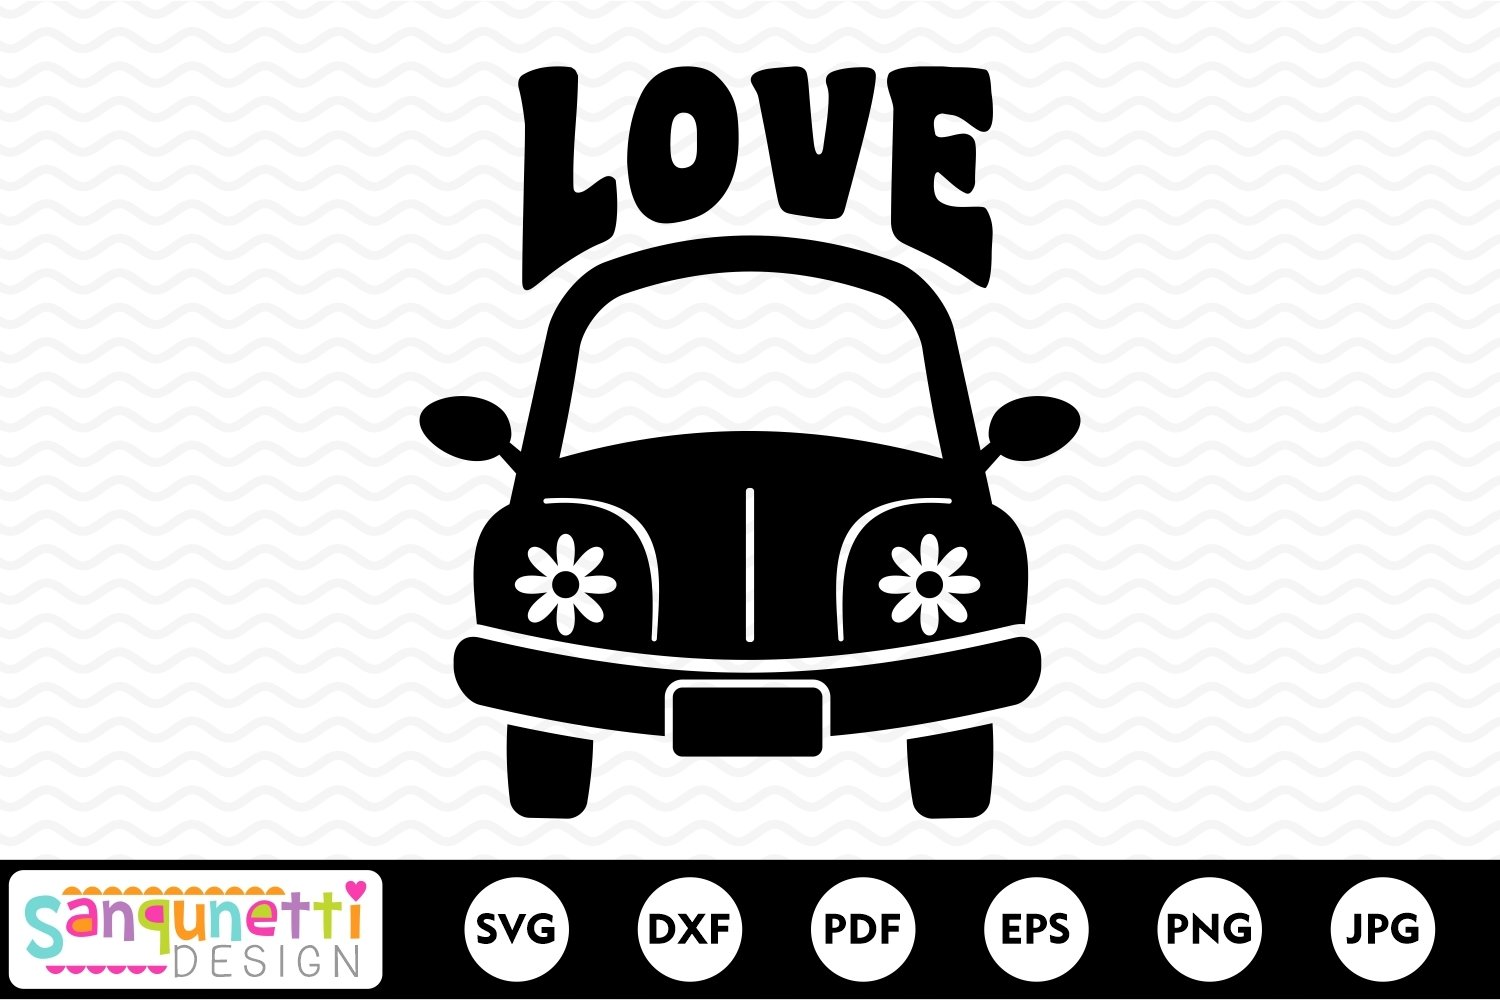 Hippie car svg, peace and love svg example image 2